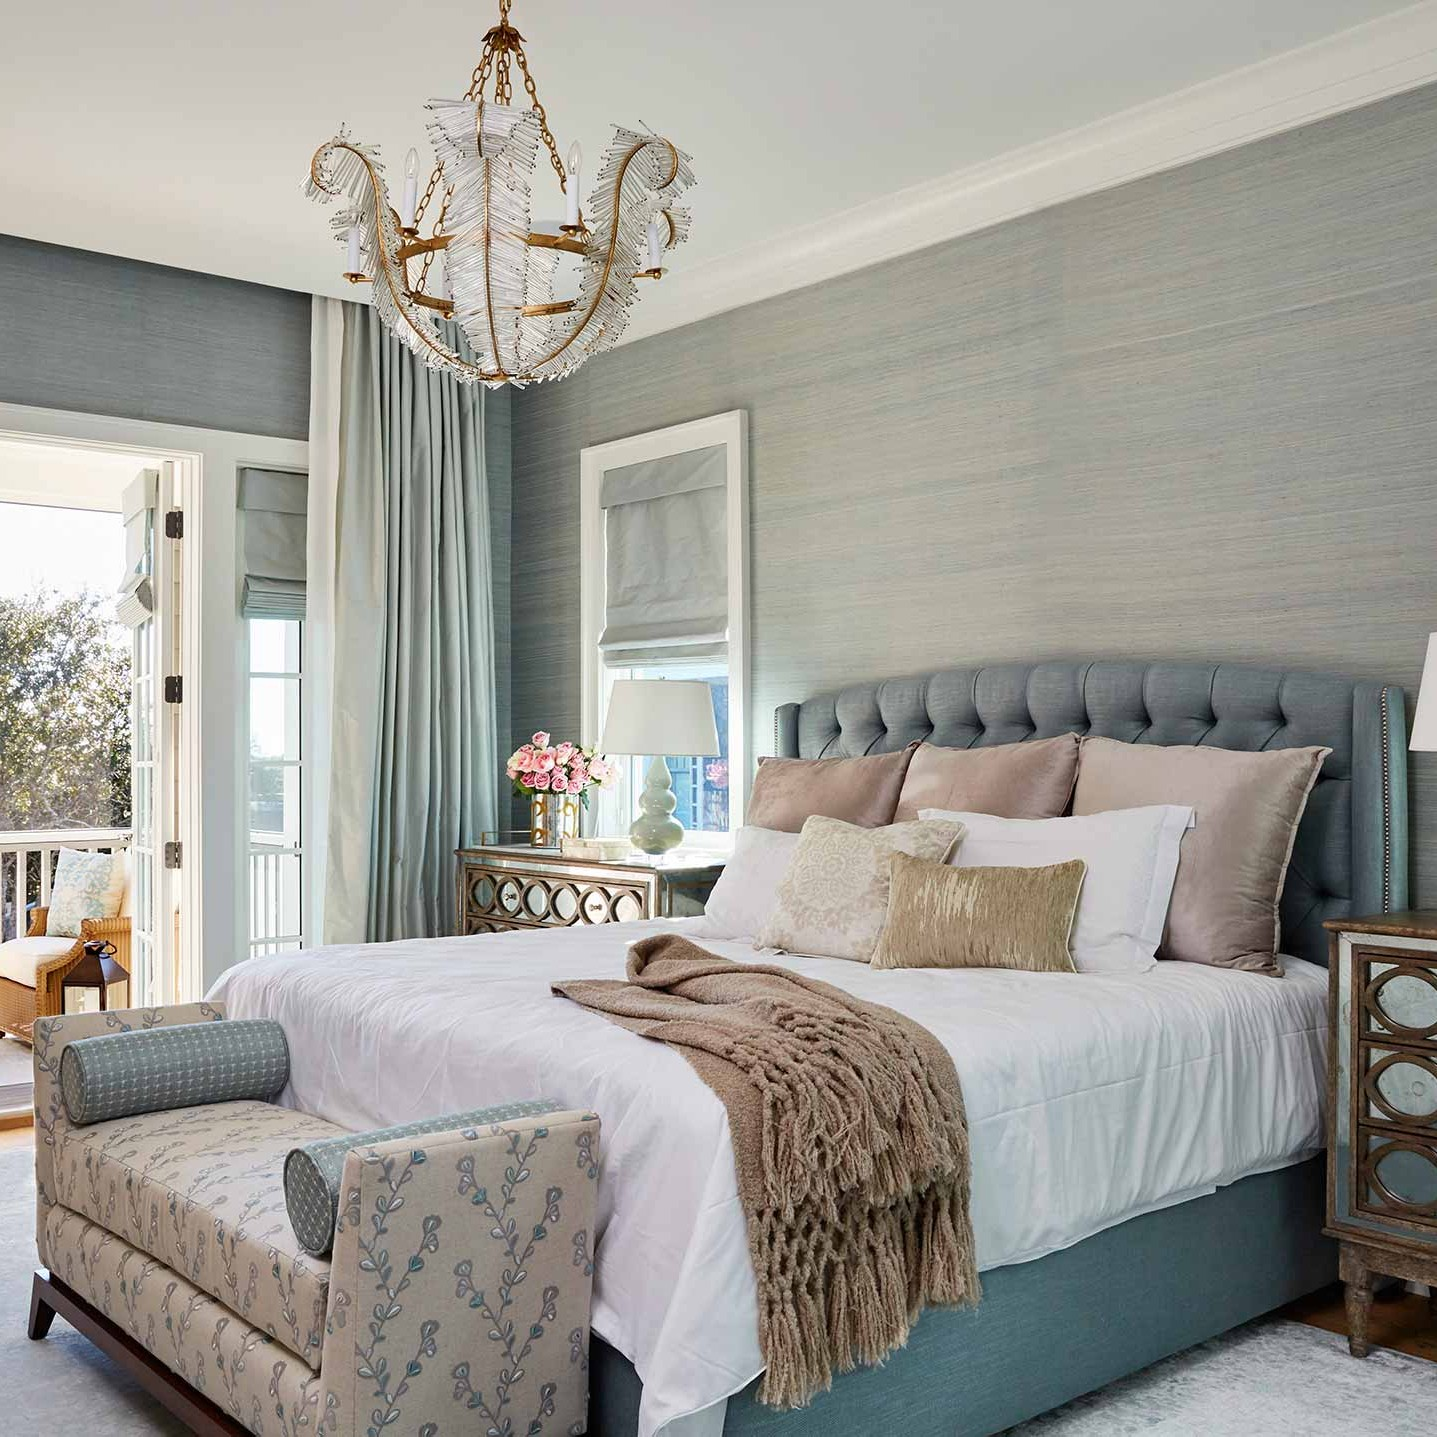 Bedroom with rich materials like silk grass cloth wallcovering and raw silk drapery in watery shades of green and blue